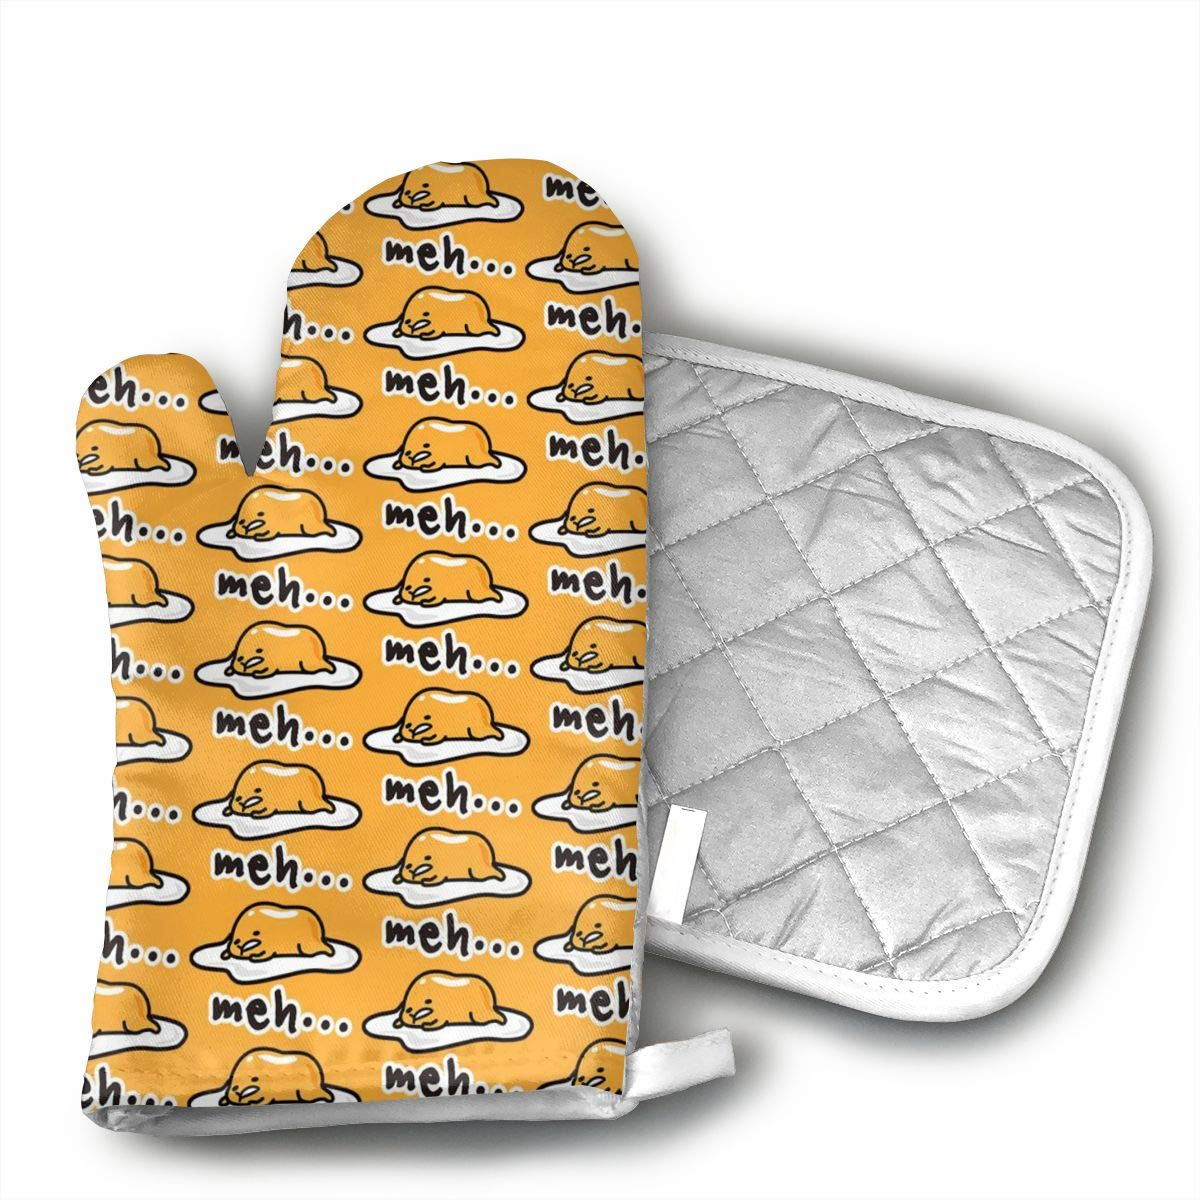 FUNINDIY Oven Mitts and Pot Holder Set Heat Resistant Oven Gloves with Non-Slip Grip and Hanging Loop Gudetama Cute